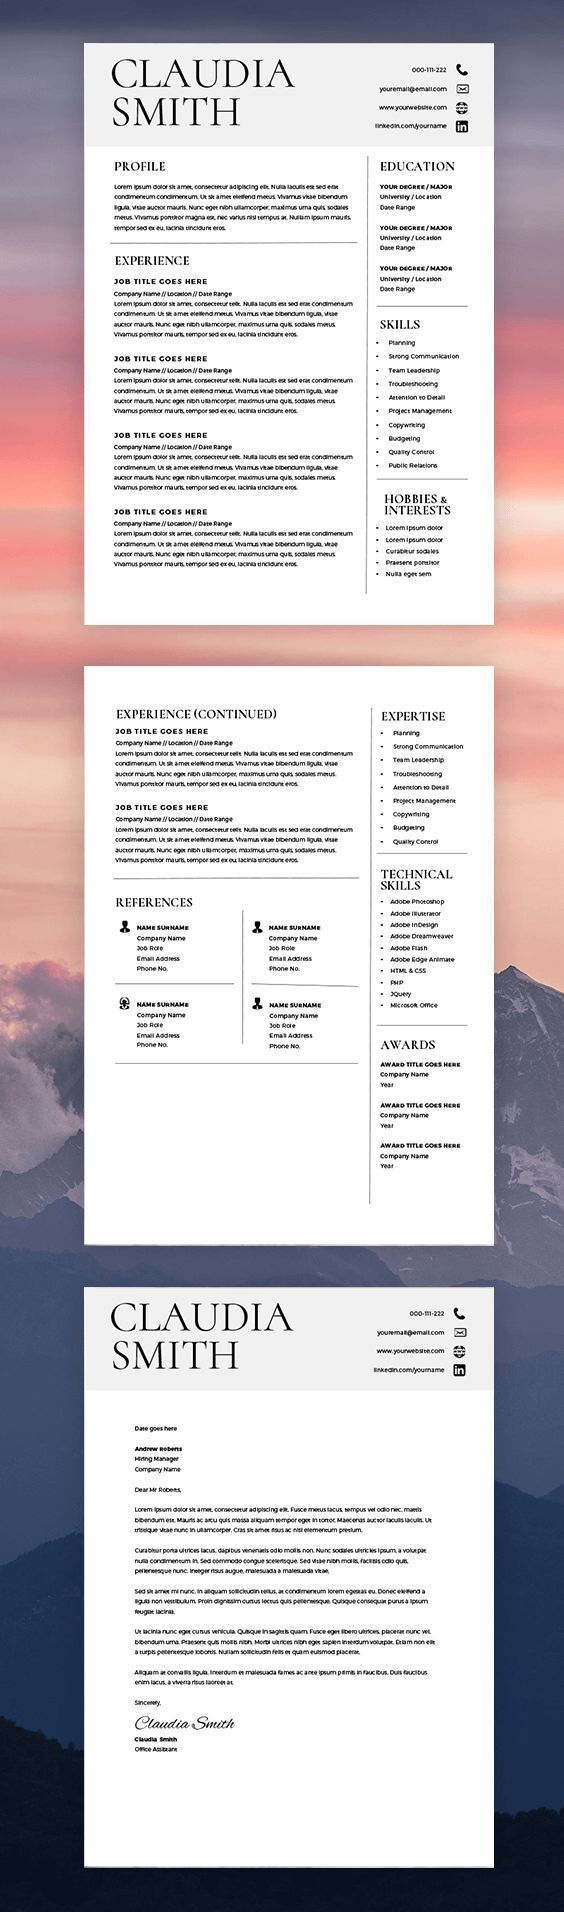 medical resume template word minimalist resume free